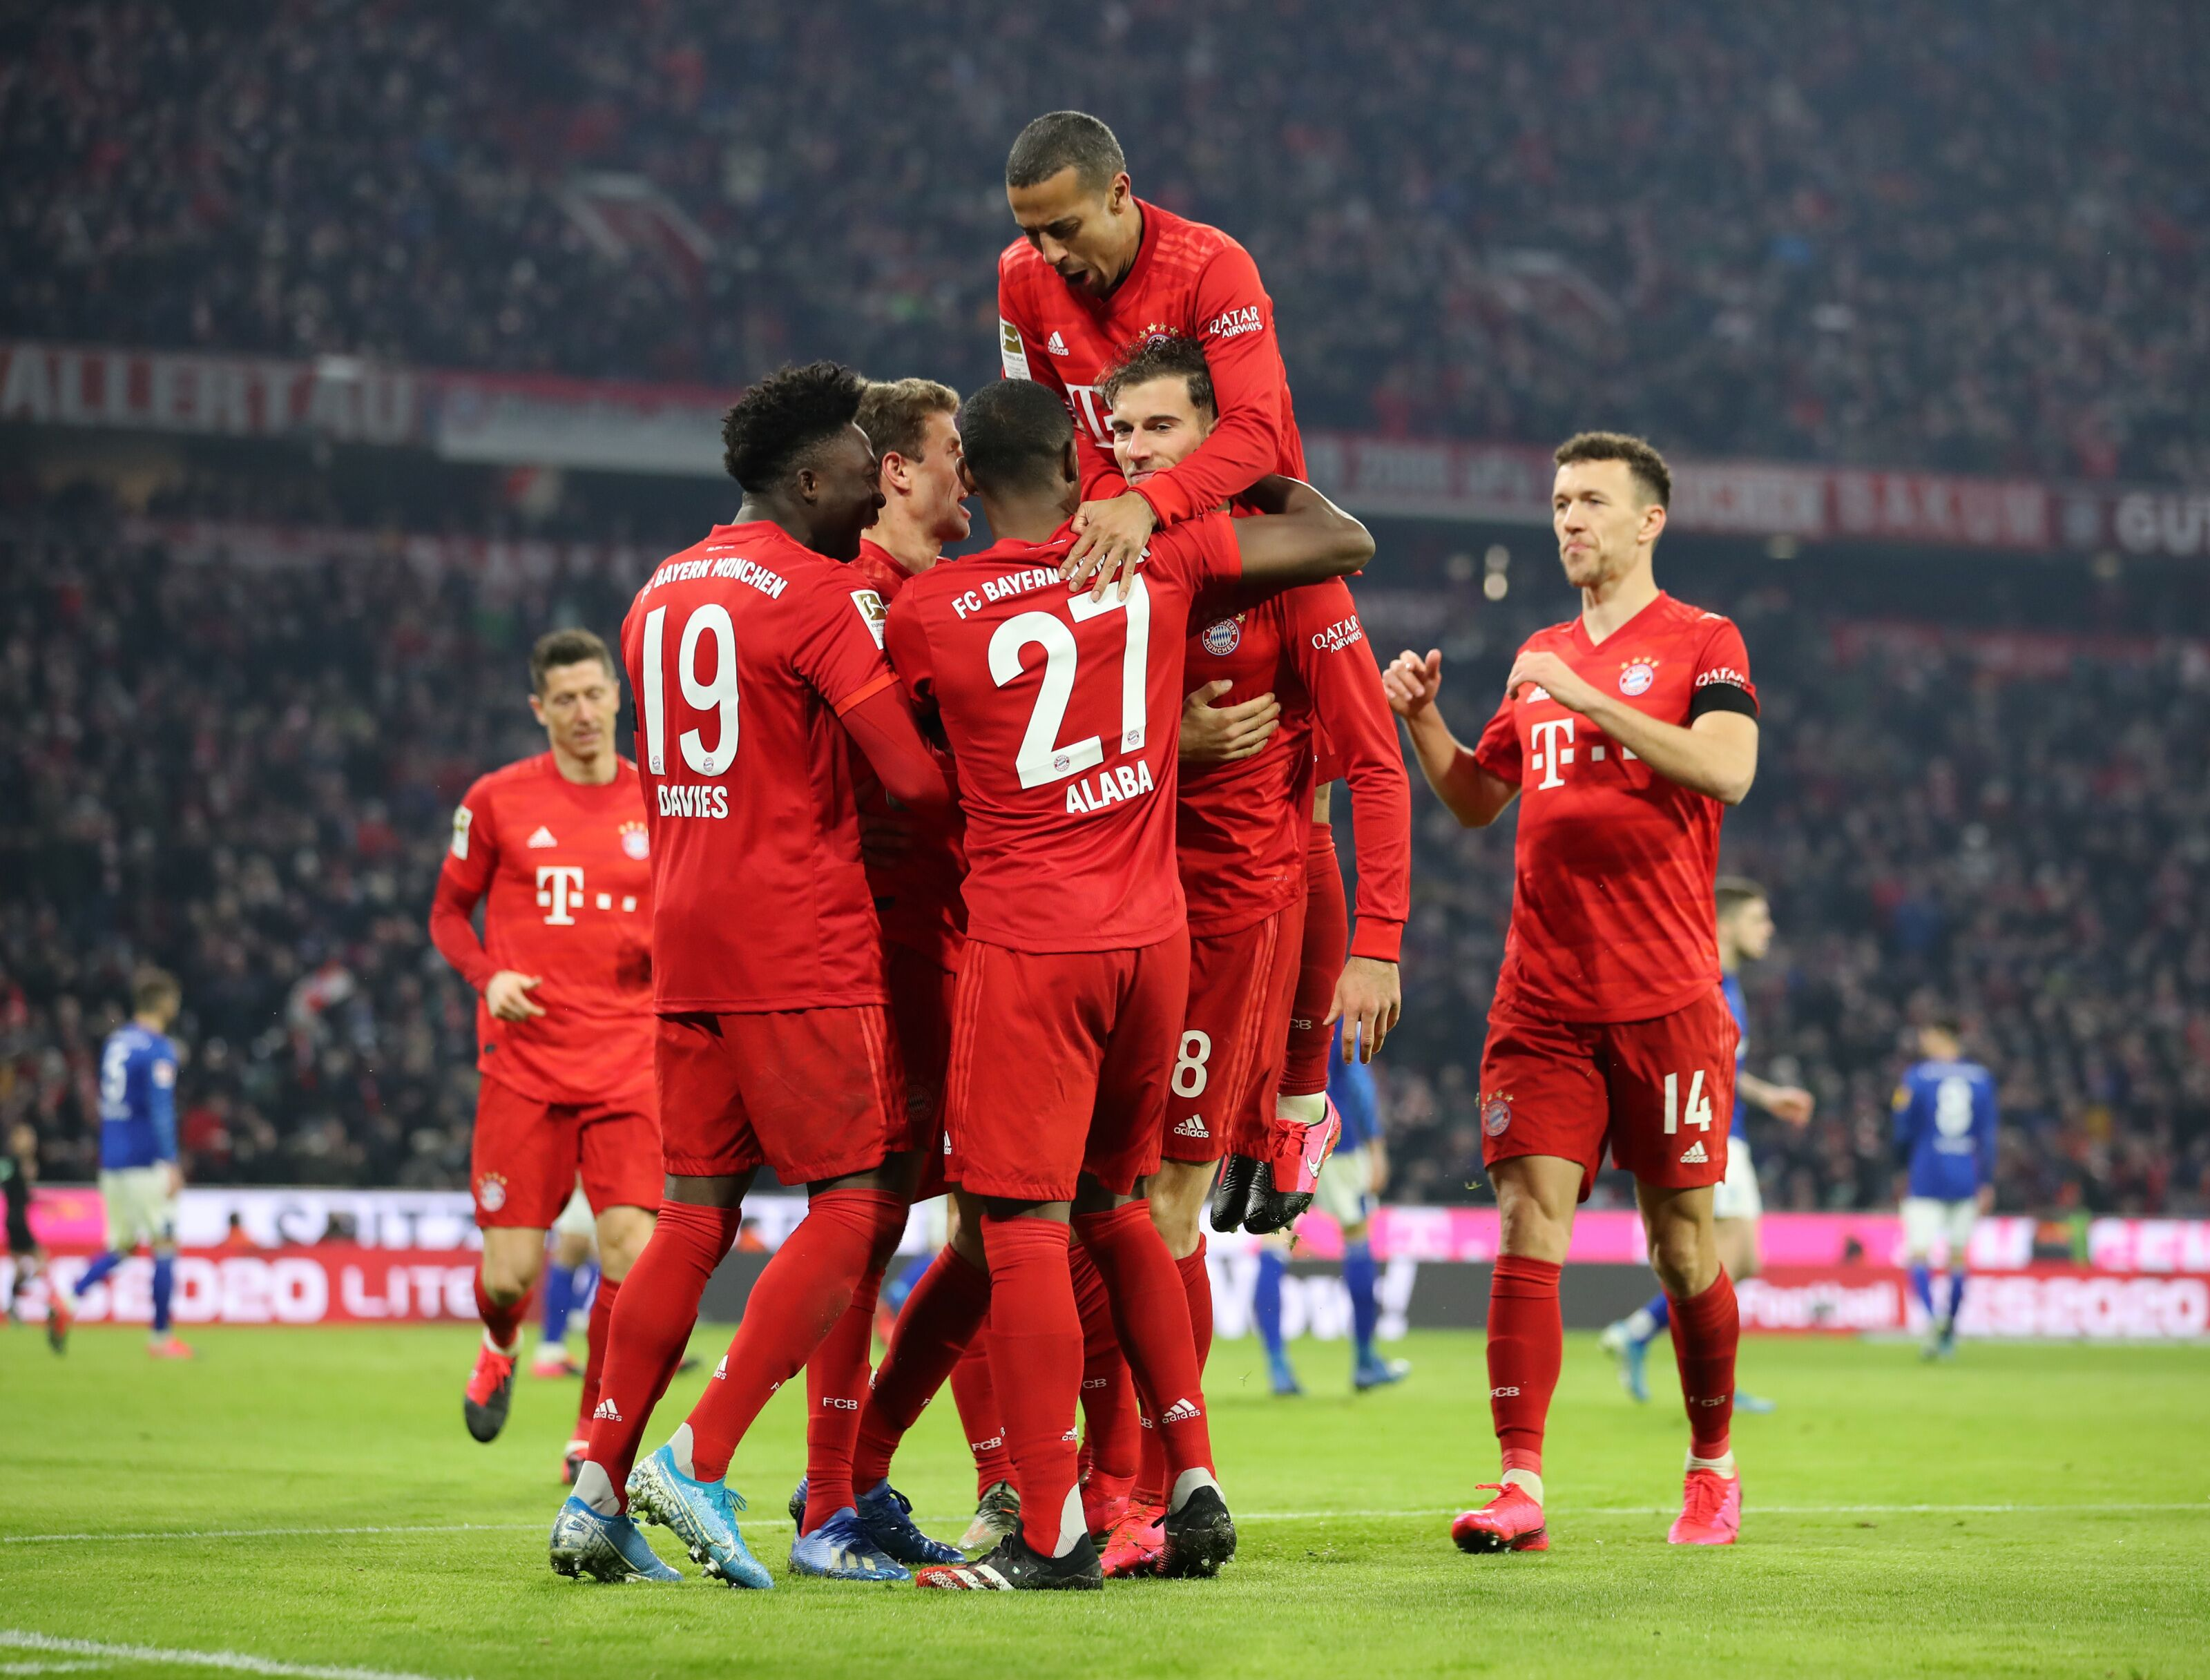 Bayern Munich thrash FC Schalke at Allianz Arena